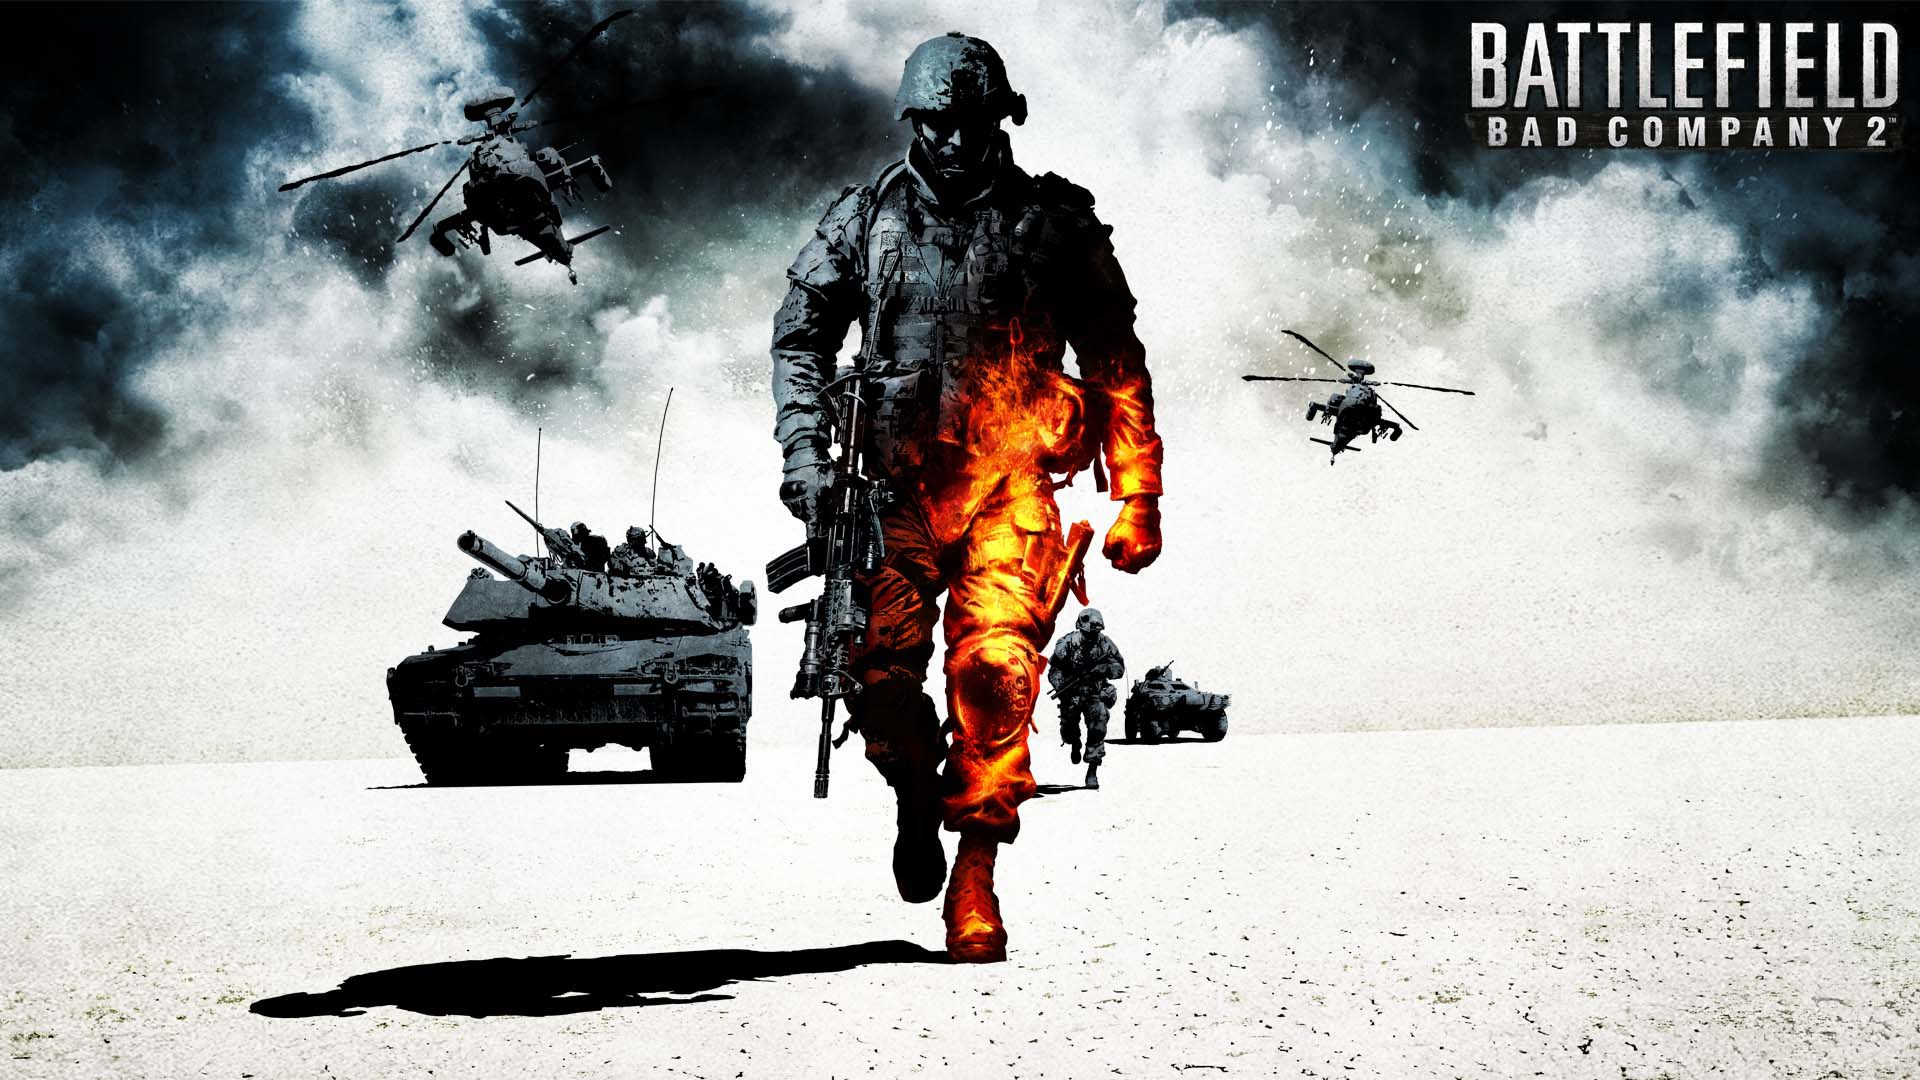 Battlefield: Bad Company 2